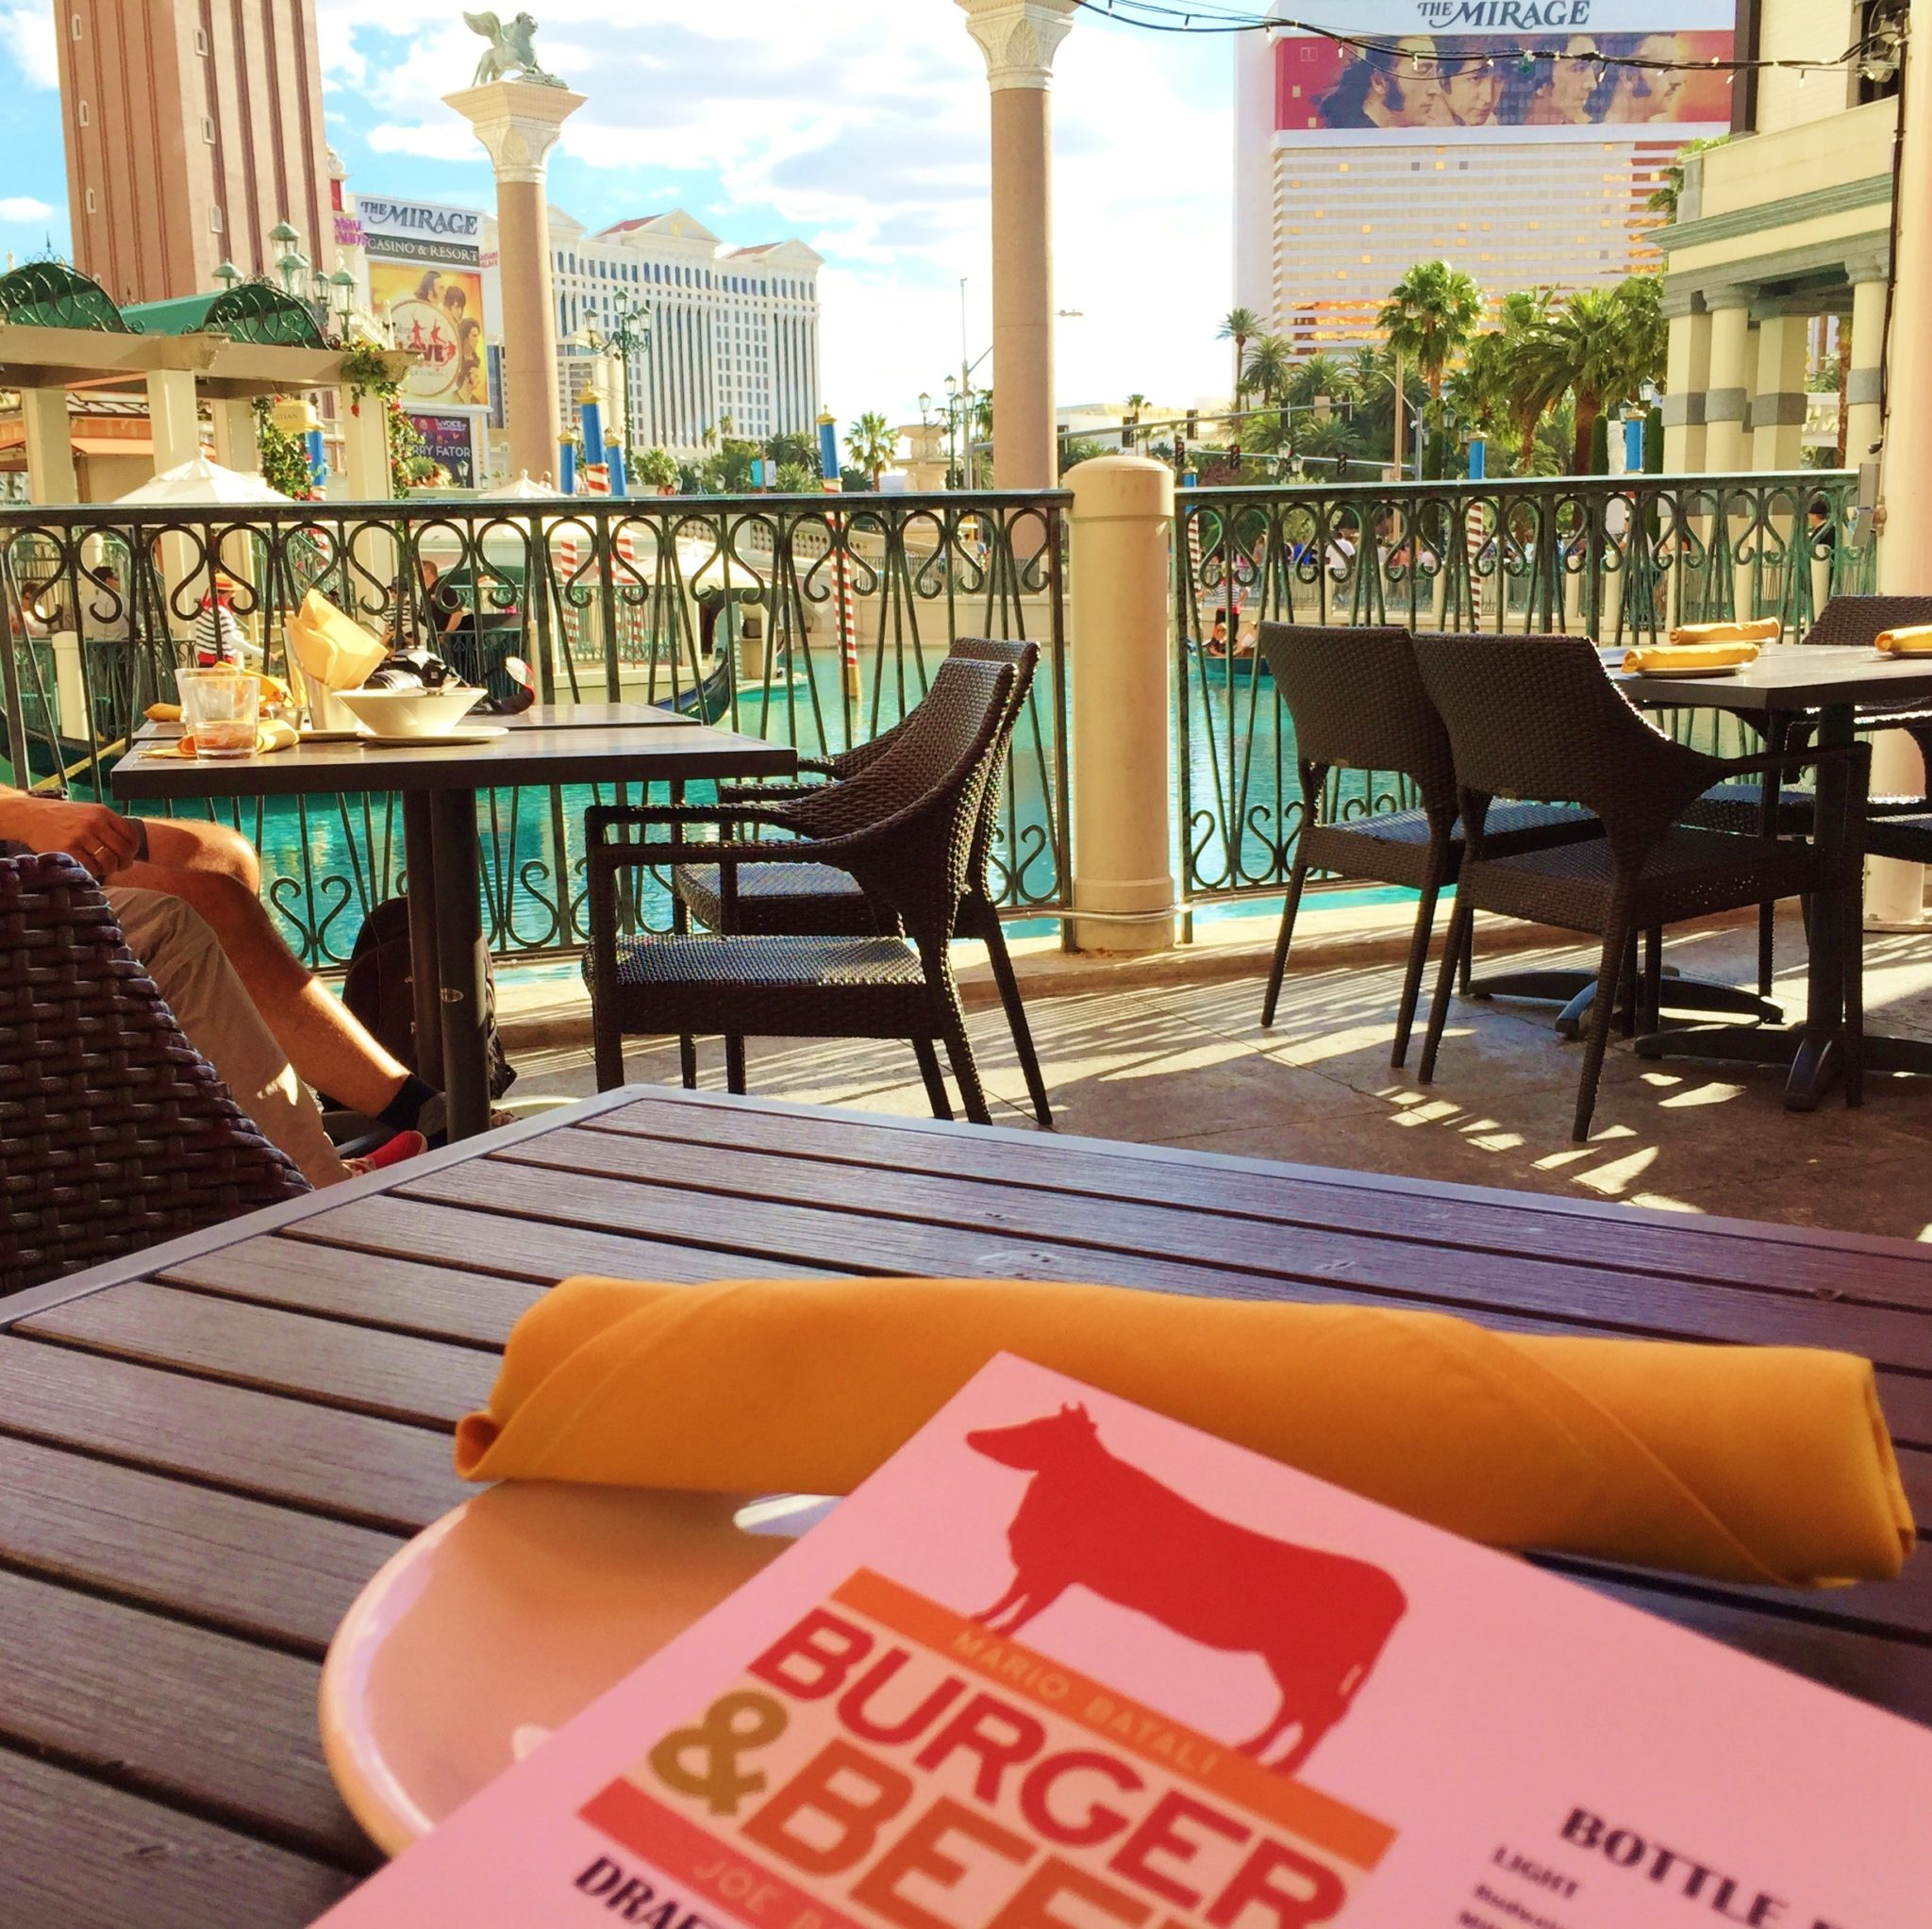 Enjoy Celebrity Radio's Mario Batali B&B Burger Beer Restaurant Review Vegas…. Firstly, aside from the food, MB's B&B has one of the most outdoor seating […]